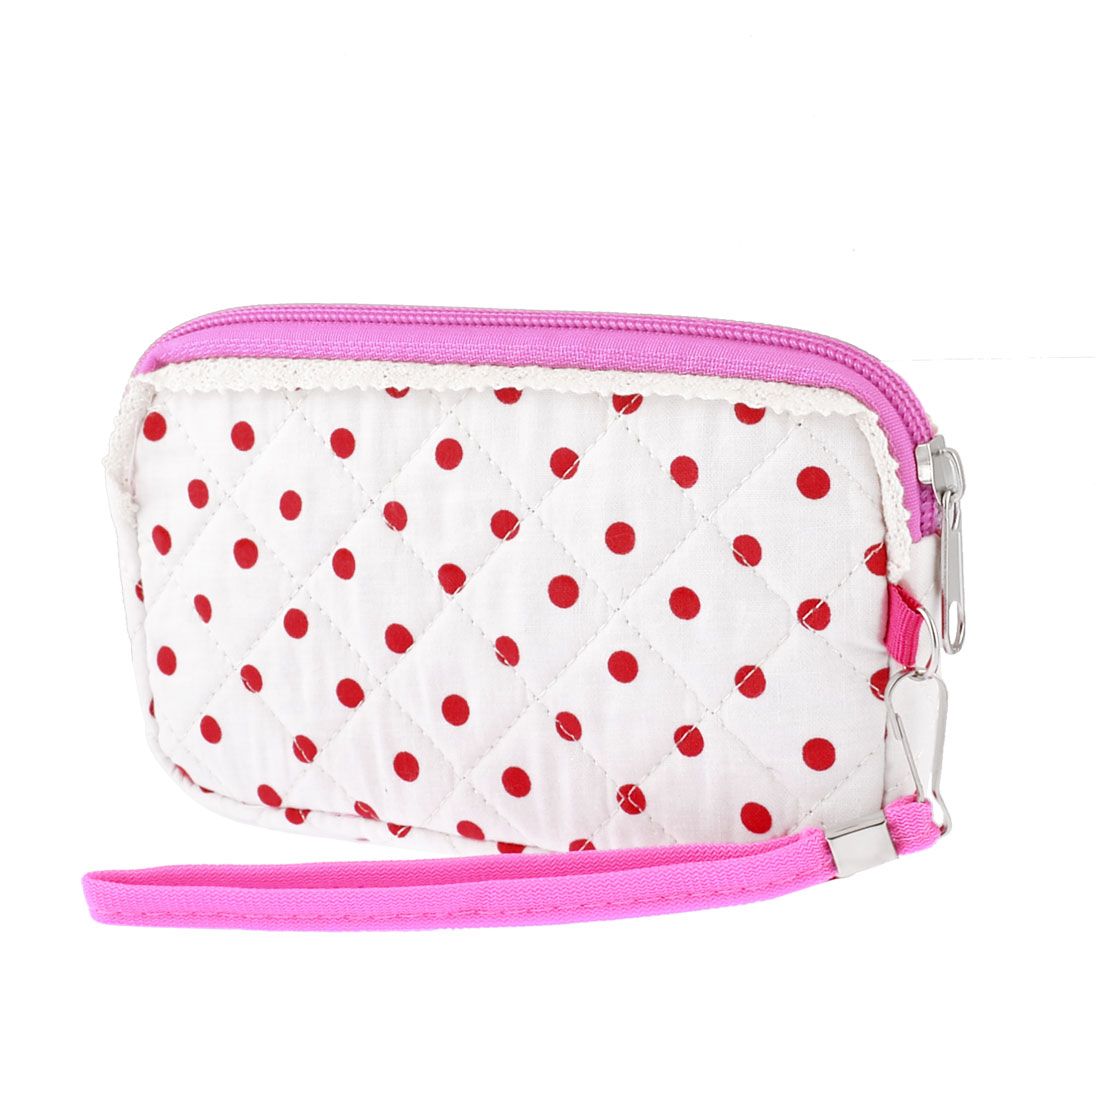 Red Dotted Pattern Nylon Zippered White Purse Phone Pouch Bag